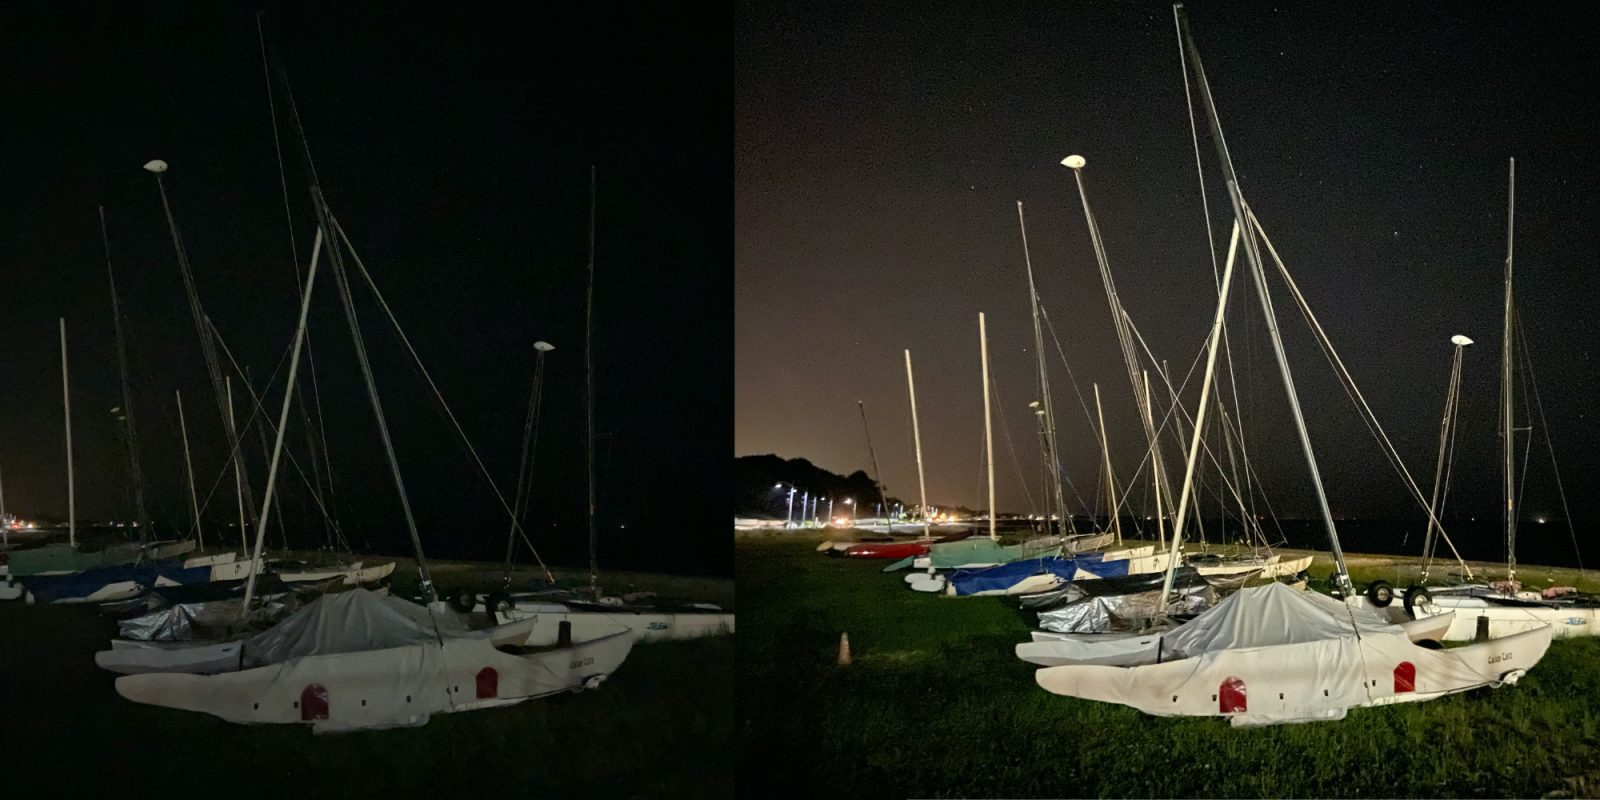 iPhone 11: Night Mode camera will make us rethink what we can capture with our phones